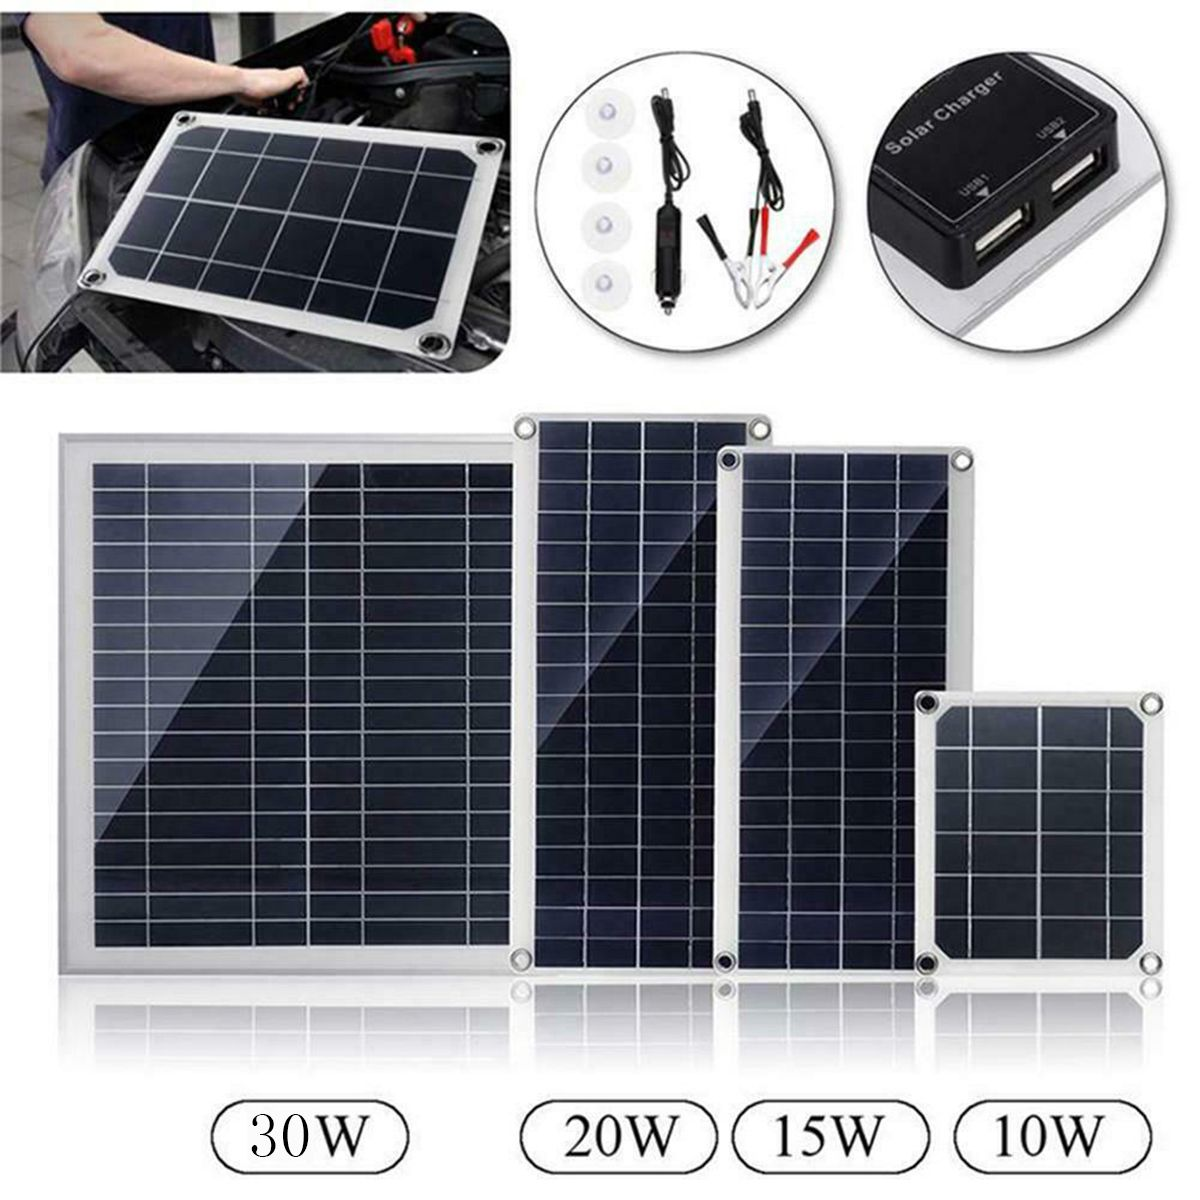 10w 15w 20w 30w 18v Dc Flexible Polycrystalline Solar Panel With Usb Connect Module Board From Electronic Components Supplies On Banggood Com Solar Panels Flexible Solar Panels Solar